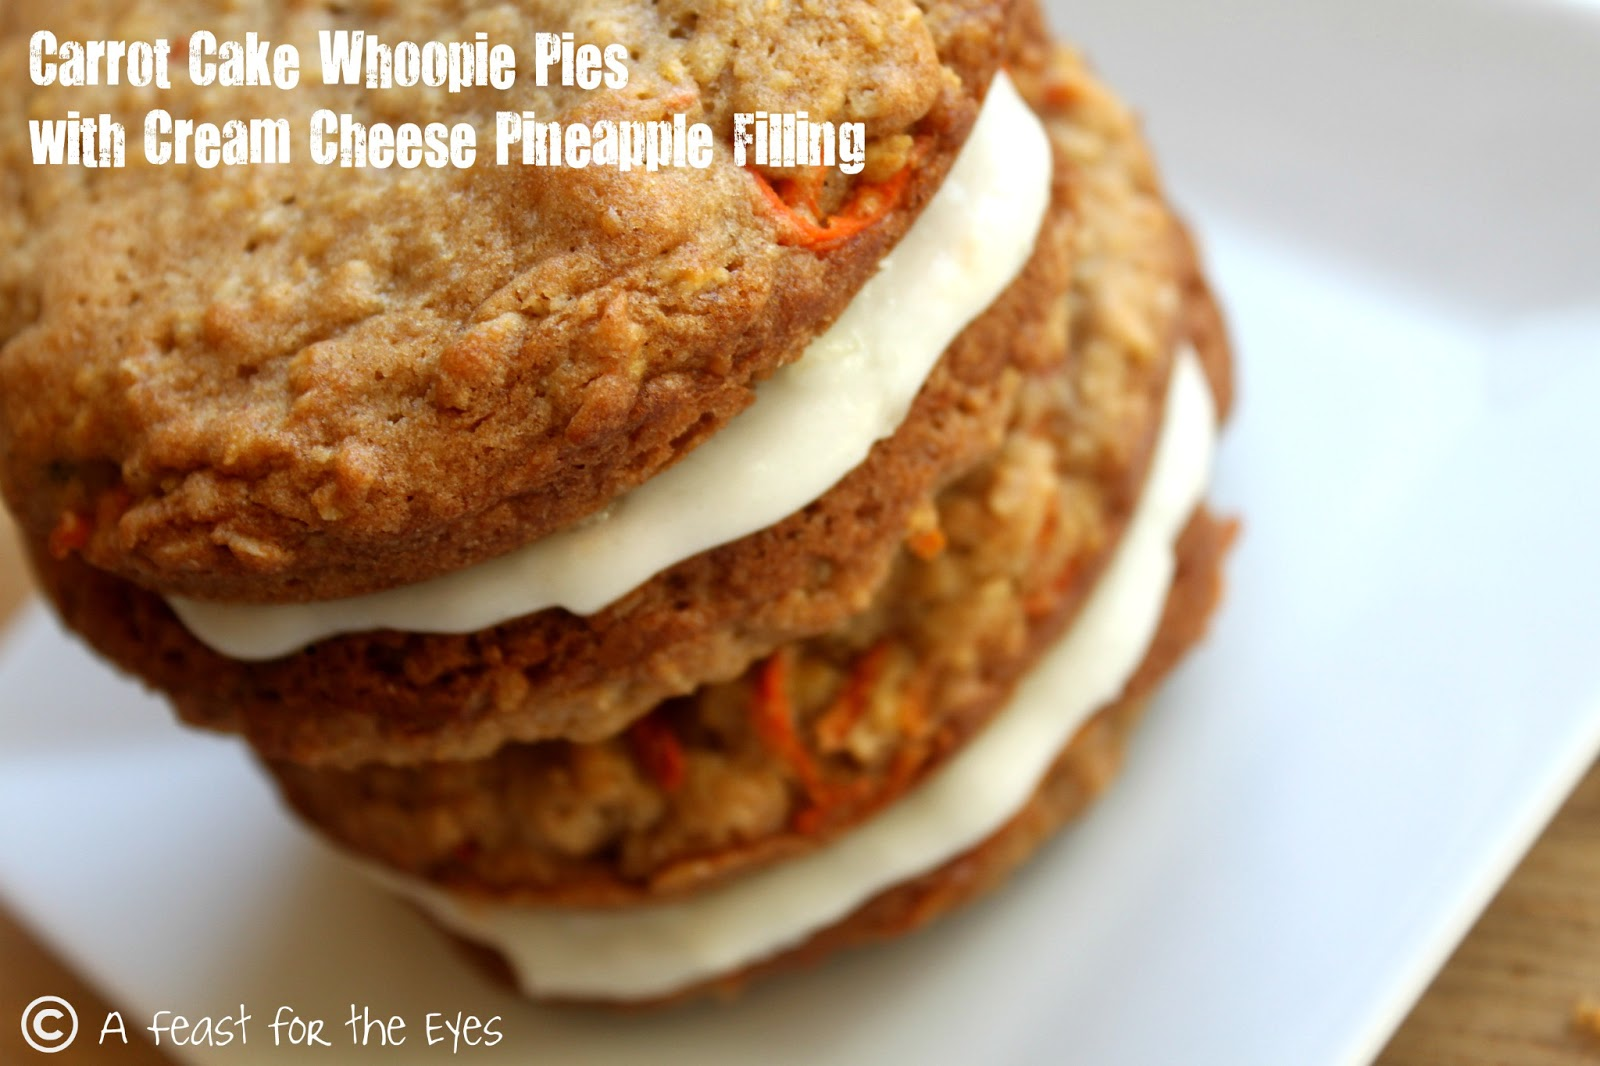 A Feast for the Eyes: Carrot Cake Whoopie Pies with a ...